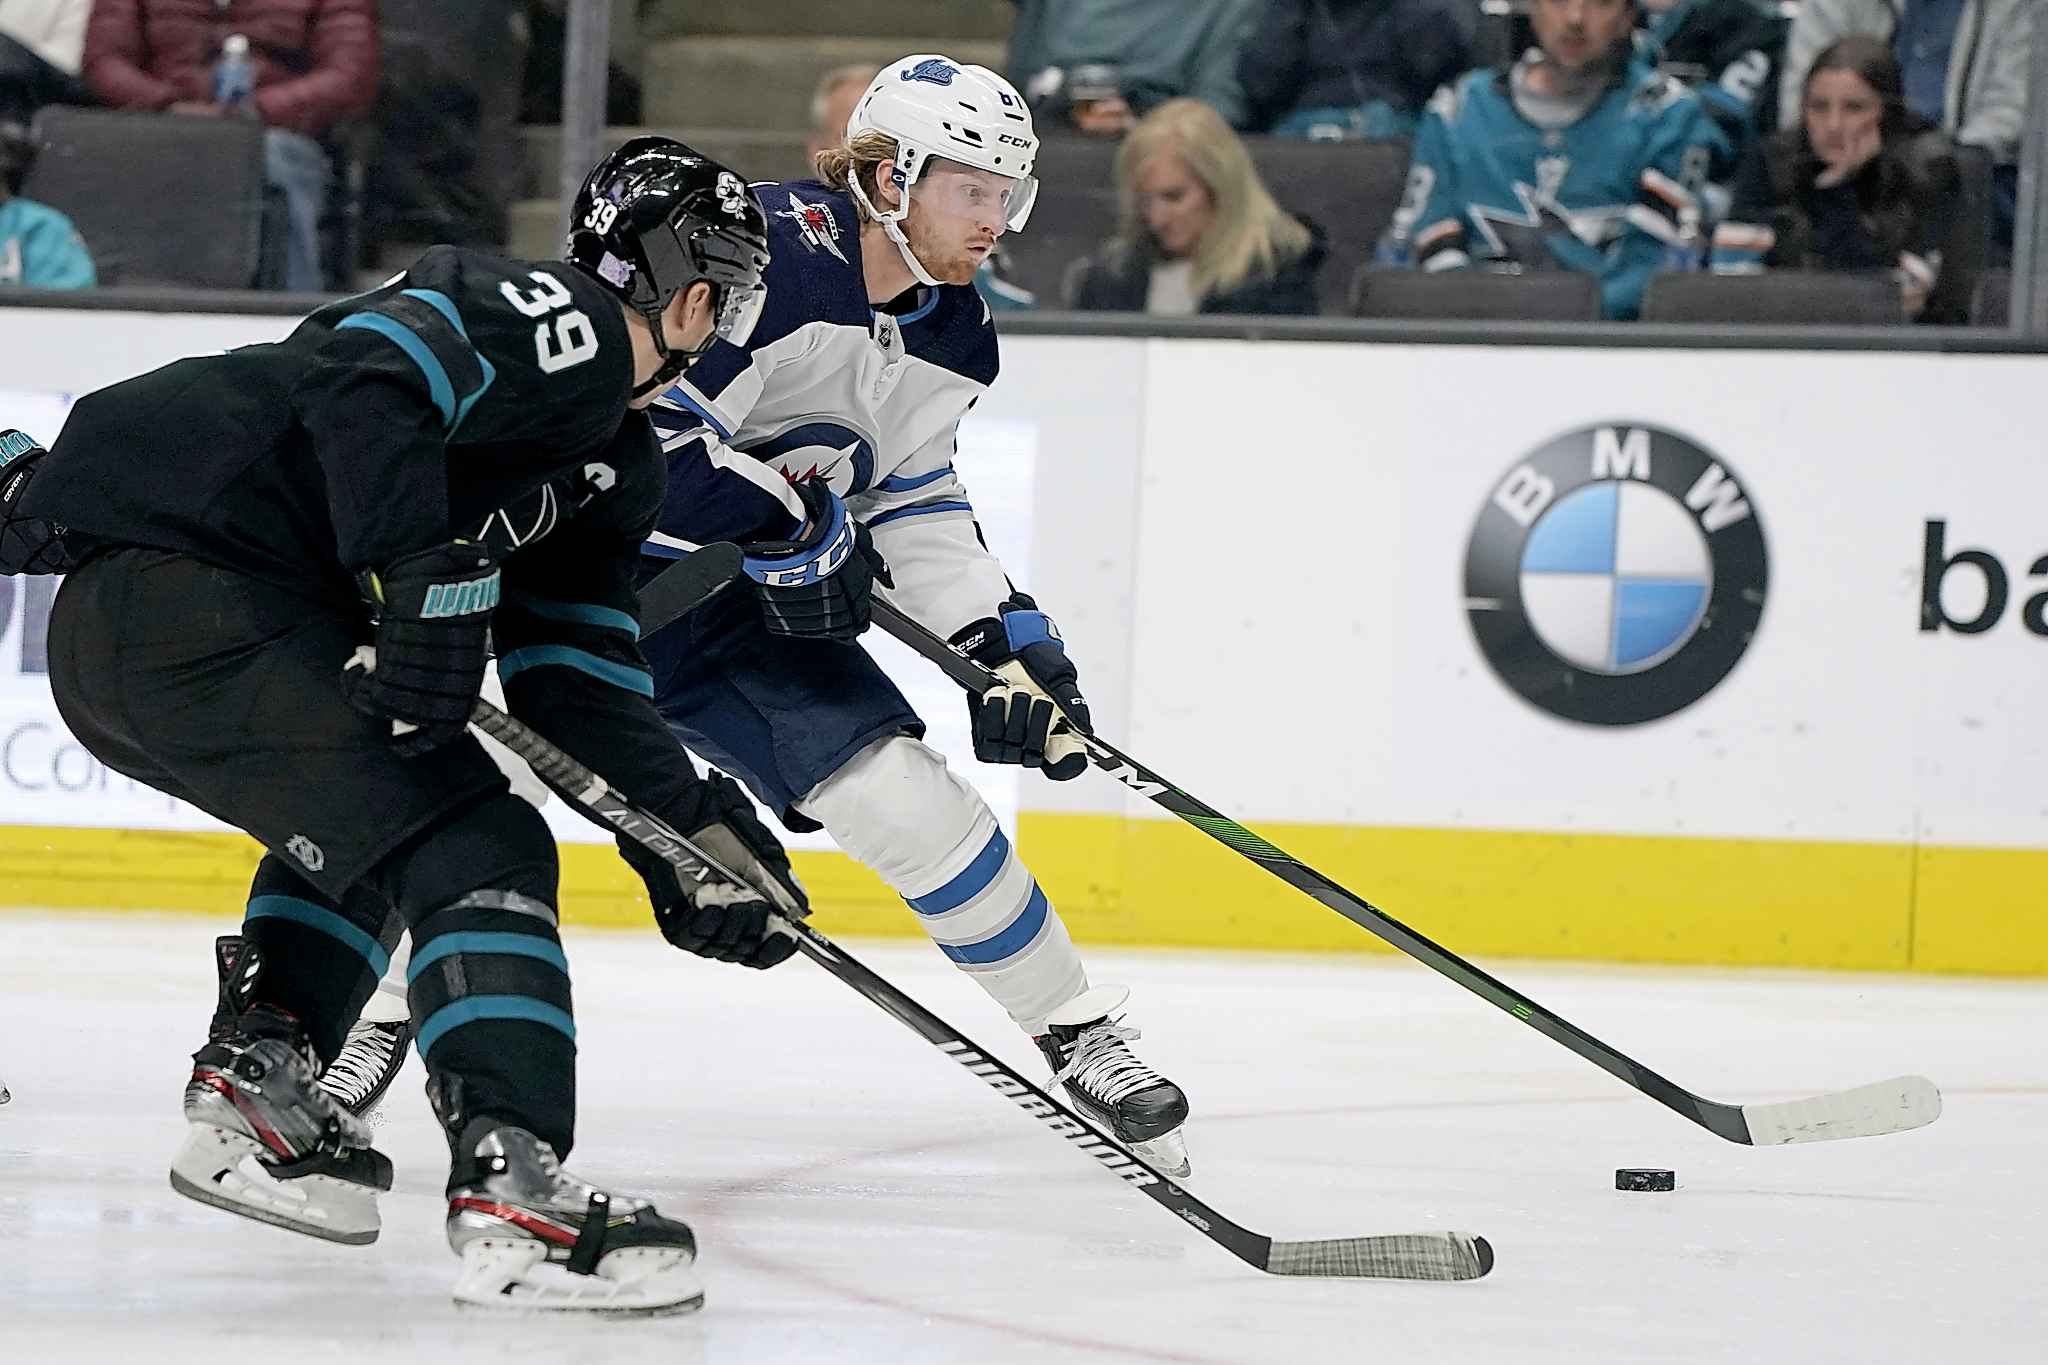 Winnipeg Jets left wing Kyle Connor works for the puck against San Jose Sharks centre Logan Couture during the second period.